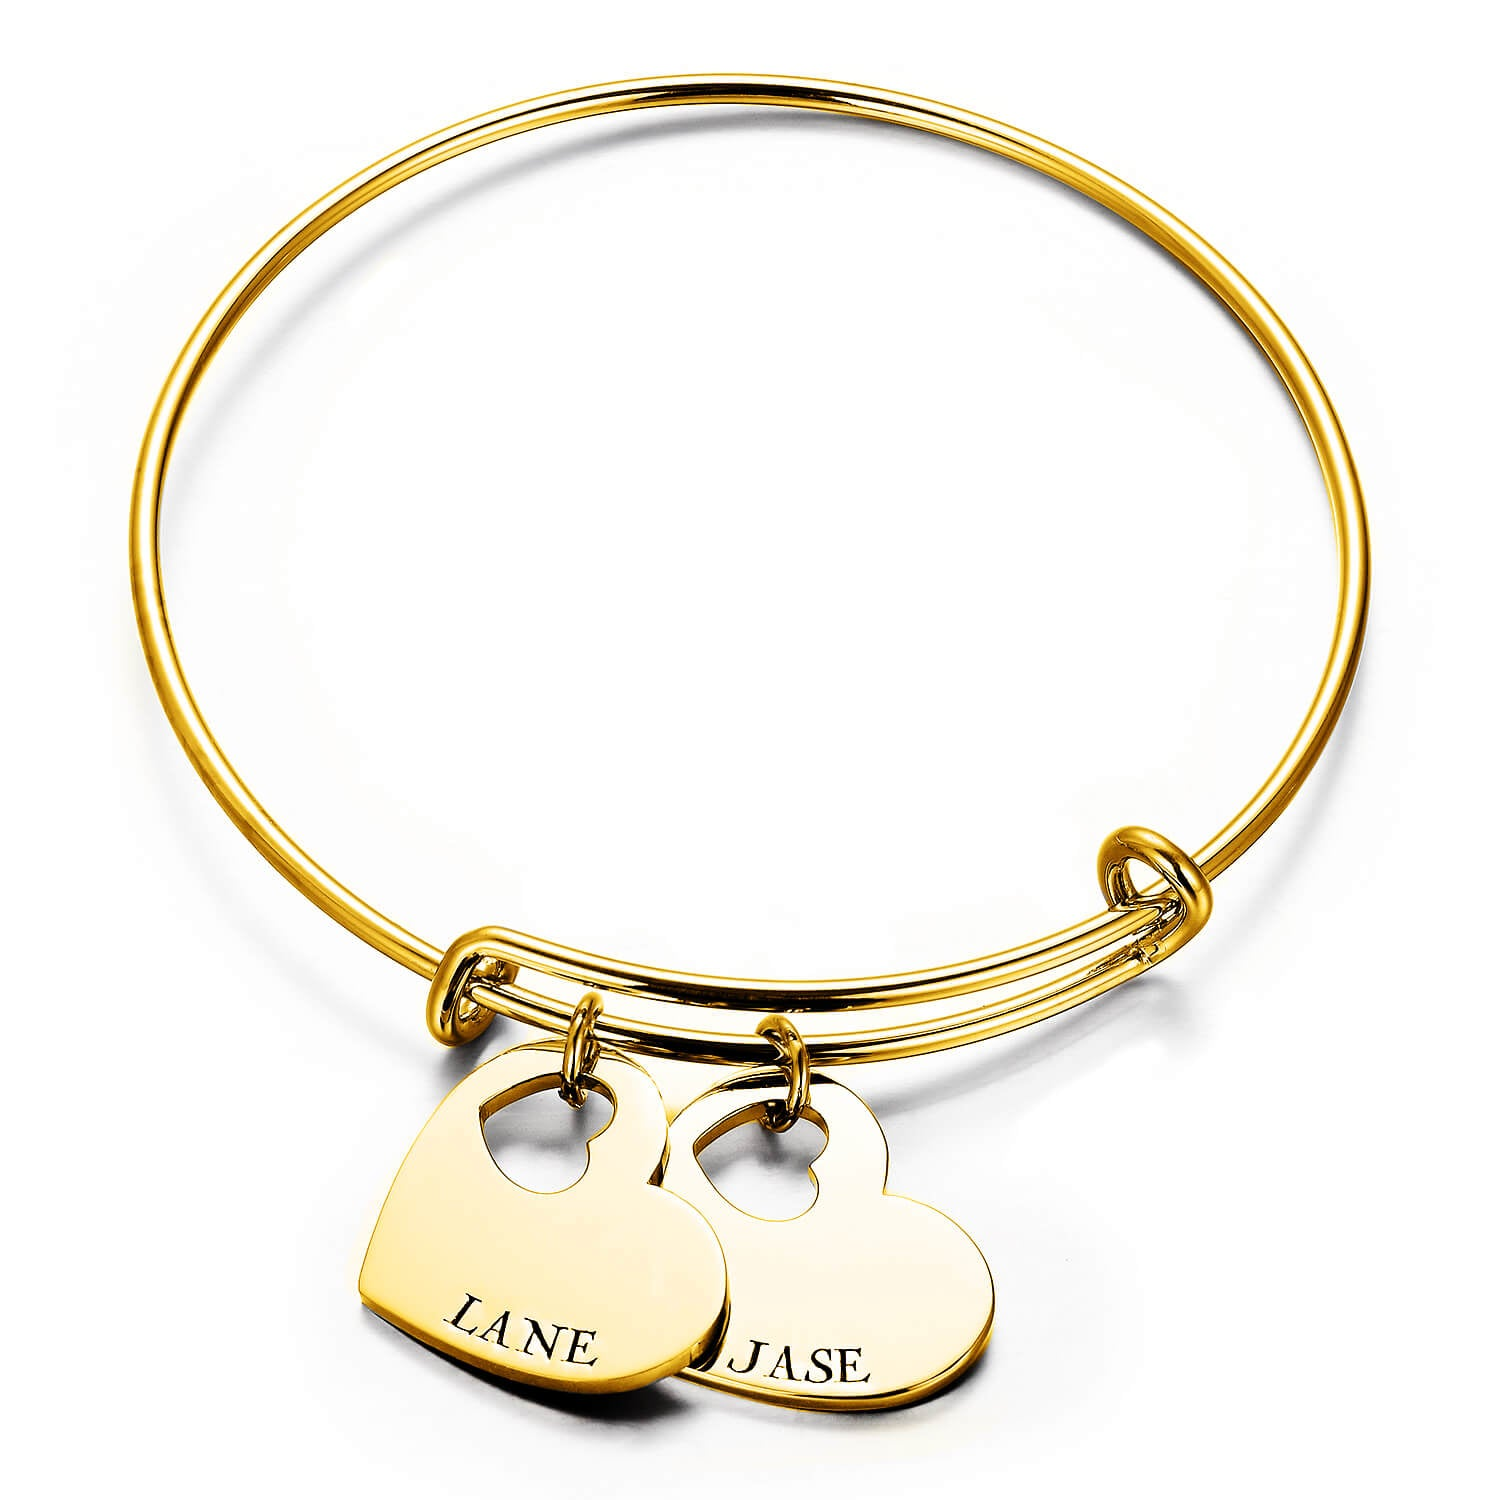 925 Sterling Silver Personalized Double Heart Name Bangle Expandable Love Bracelet - onlyone